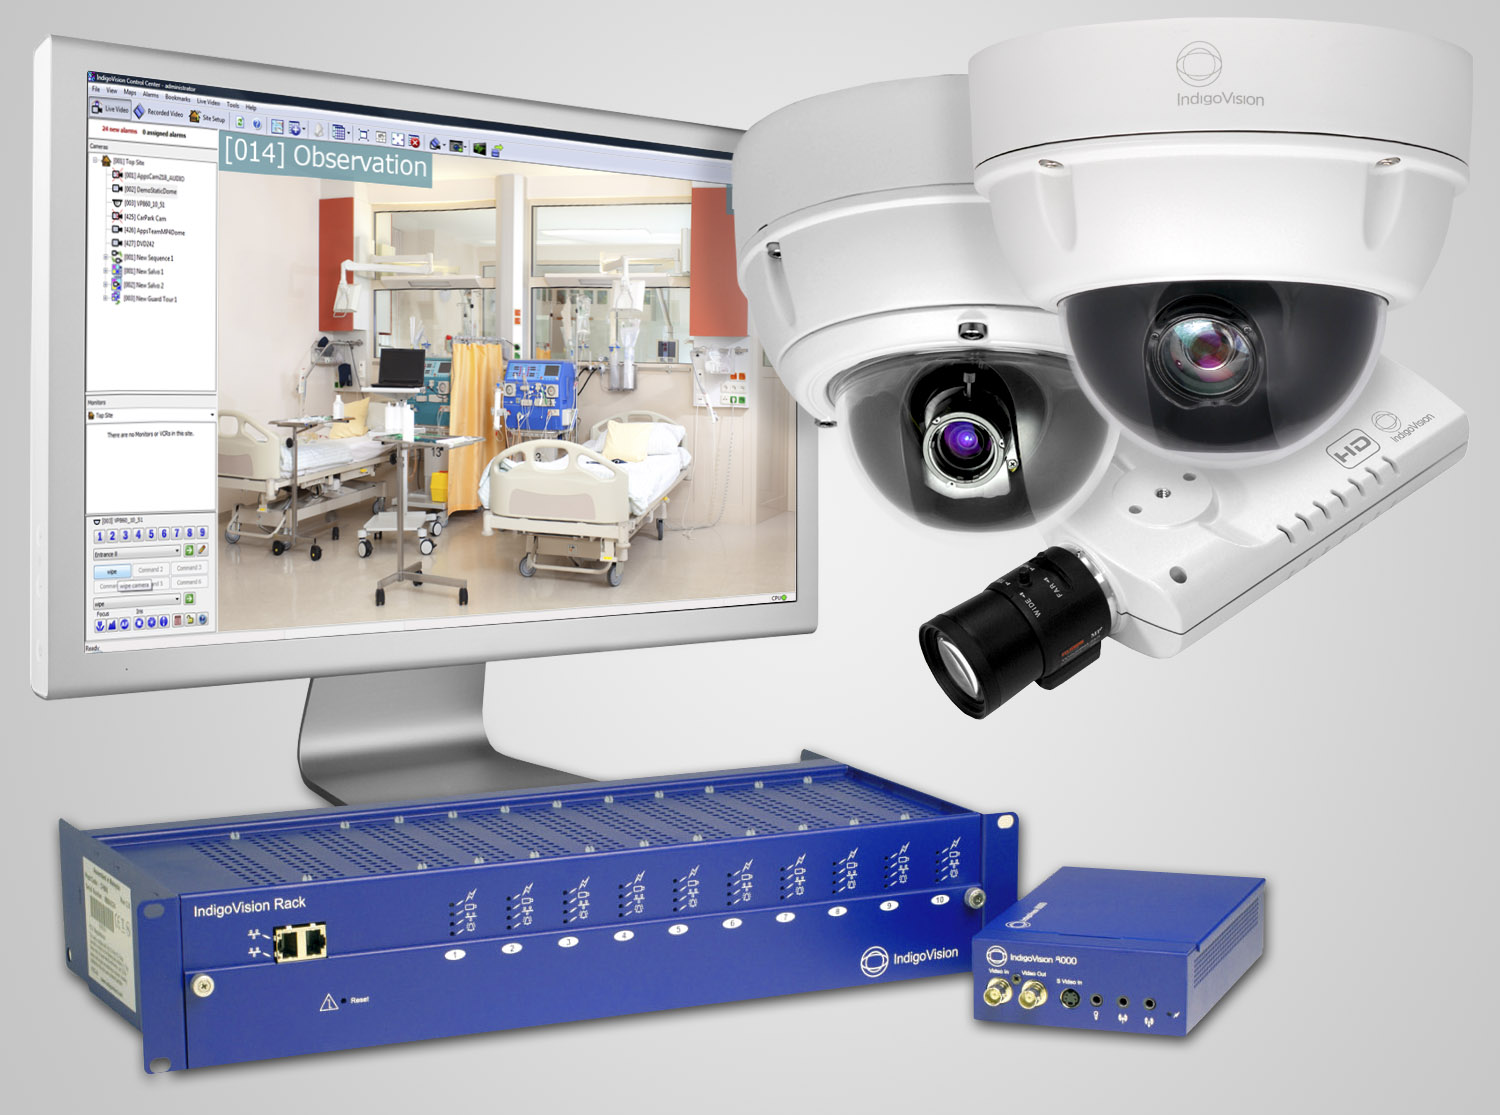 Health Centre Monitoring Improved With Indigovision